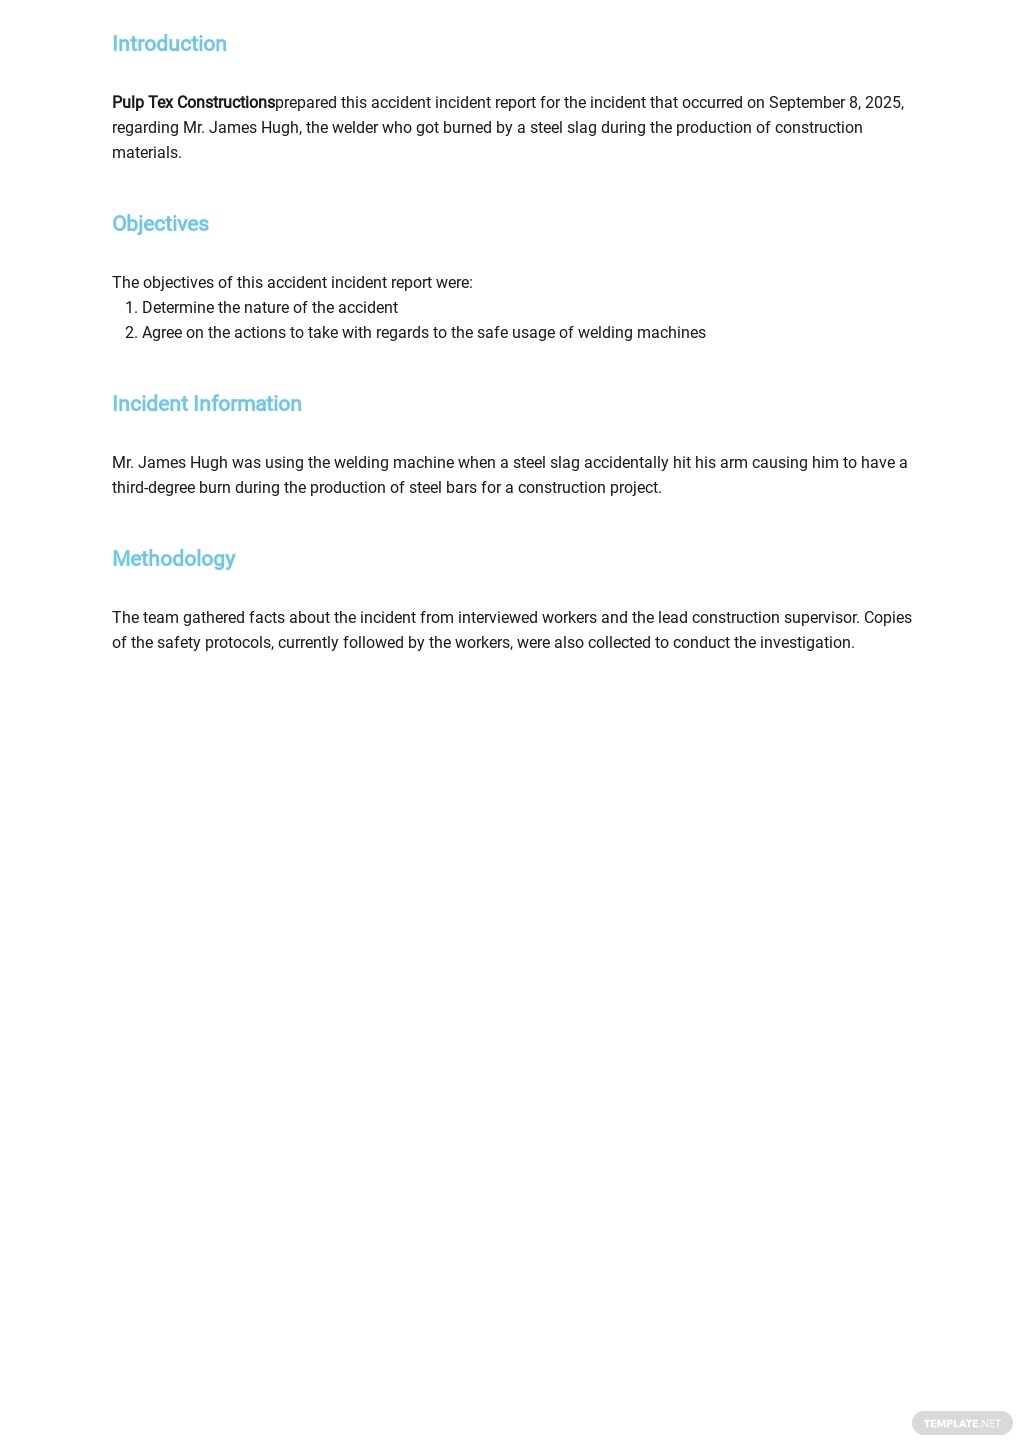 Free Accident Incident Report Template 1.jpe